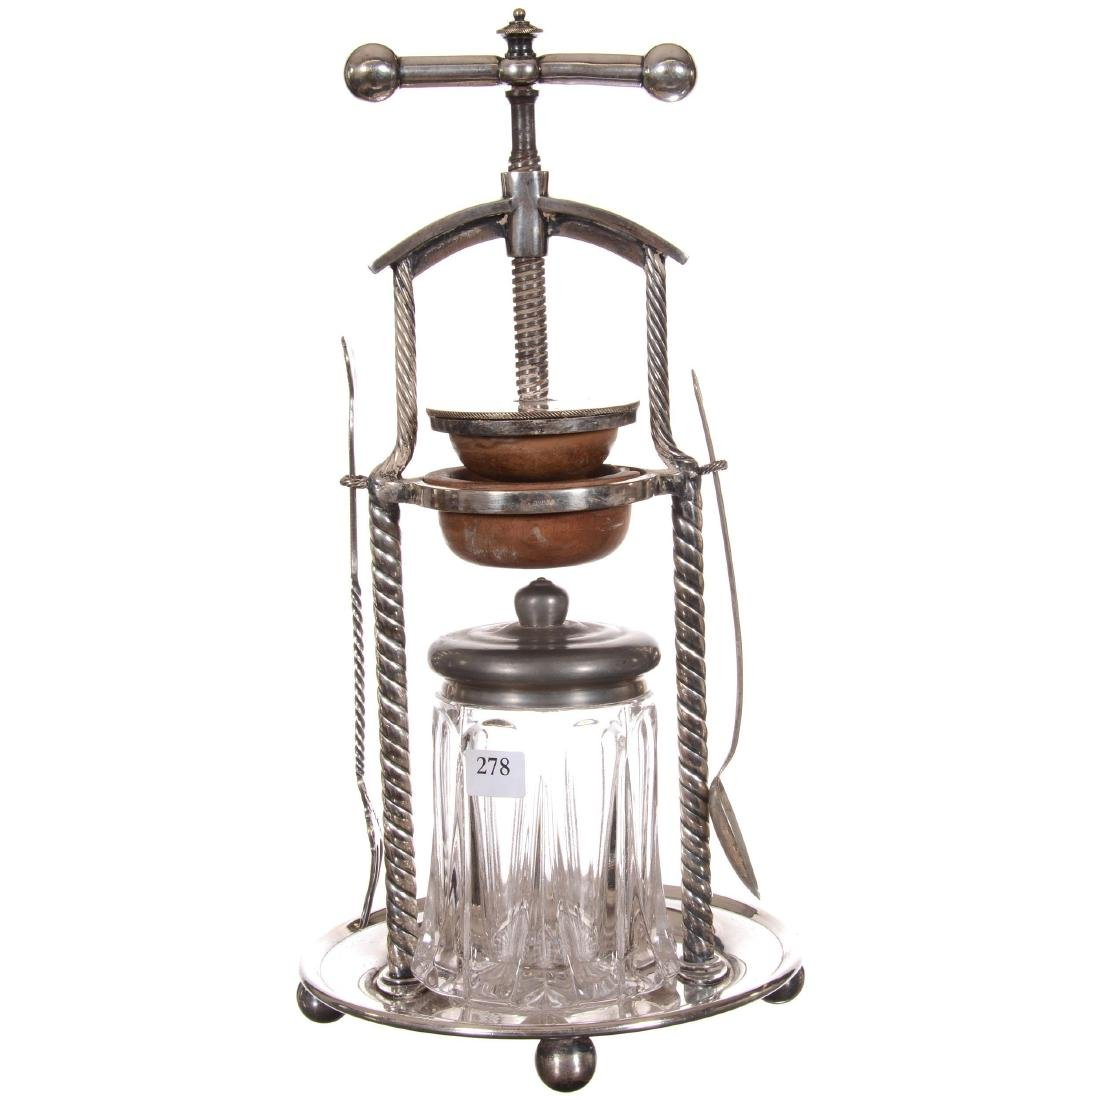 Vintage Victorian Era Juice Press